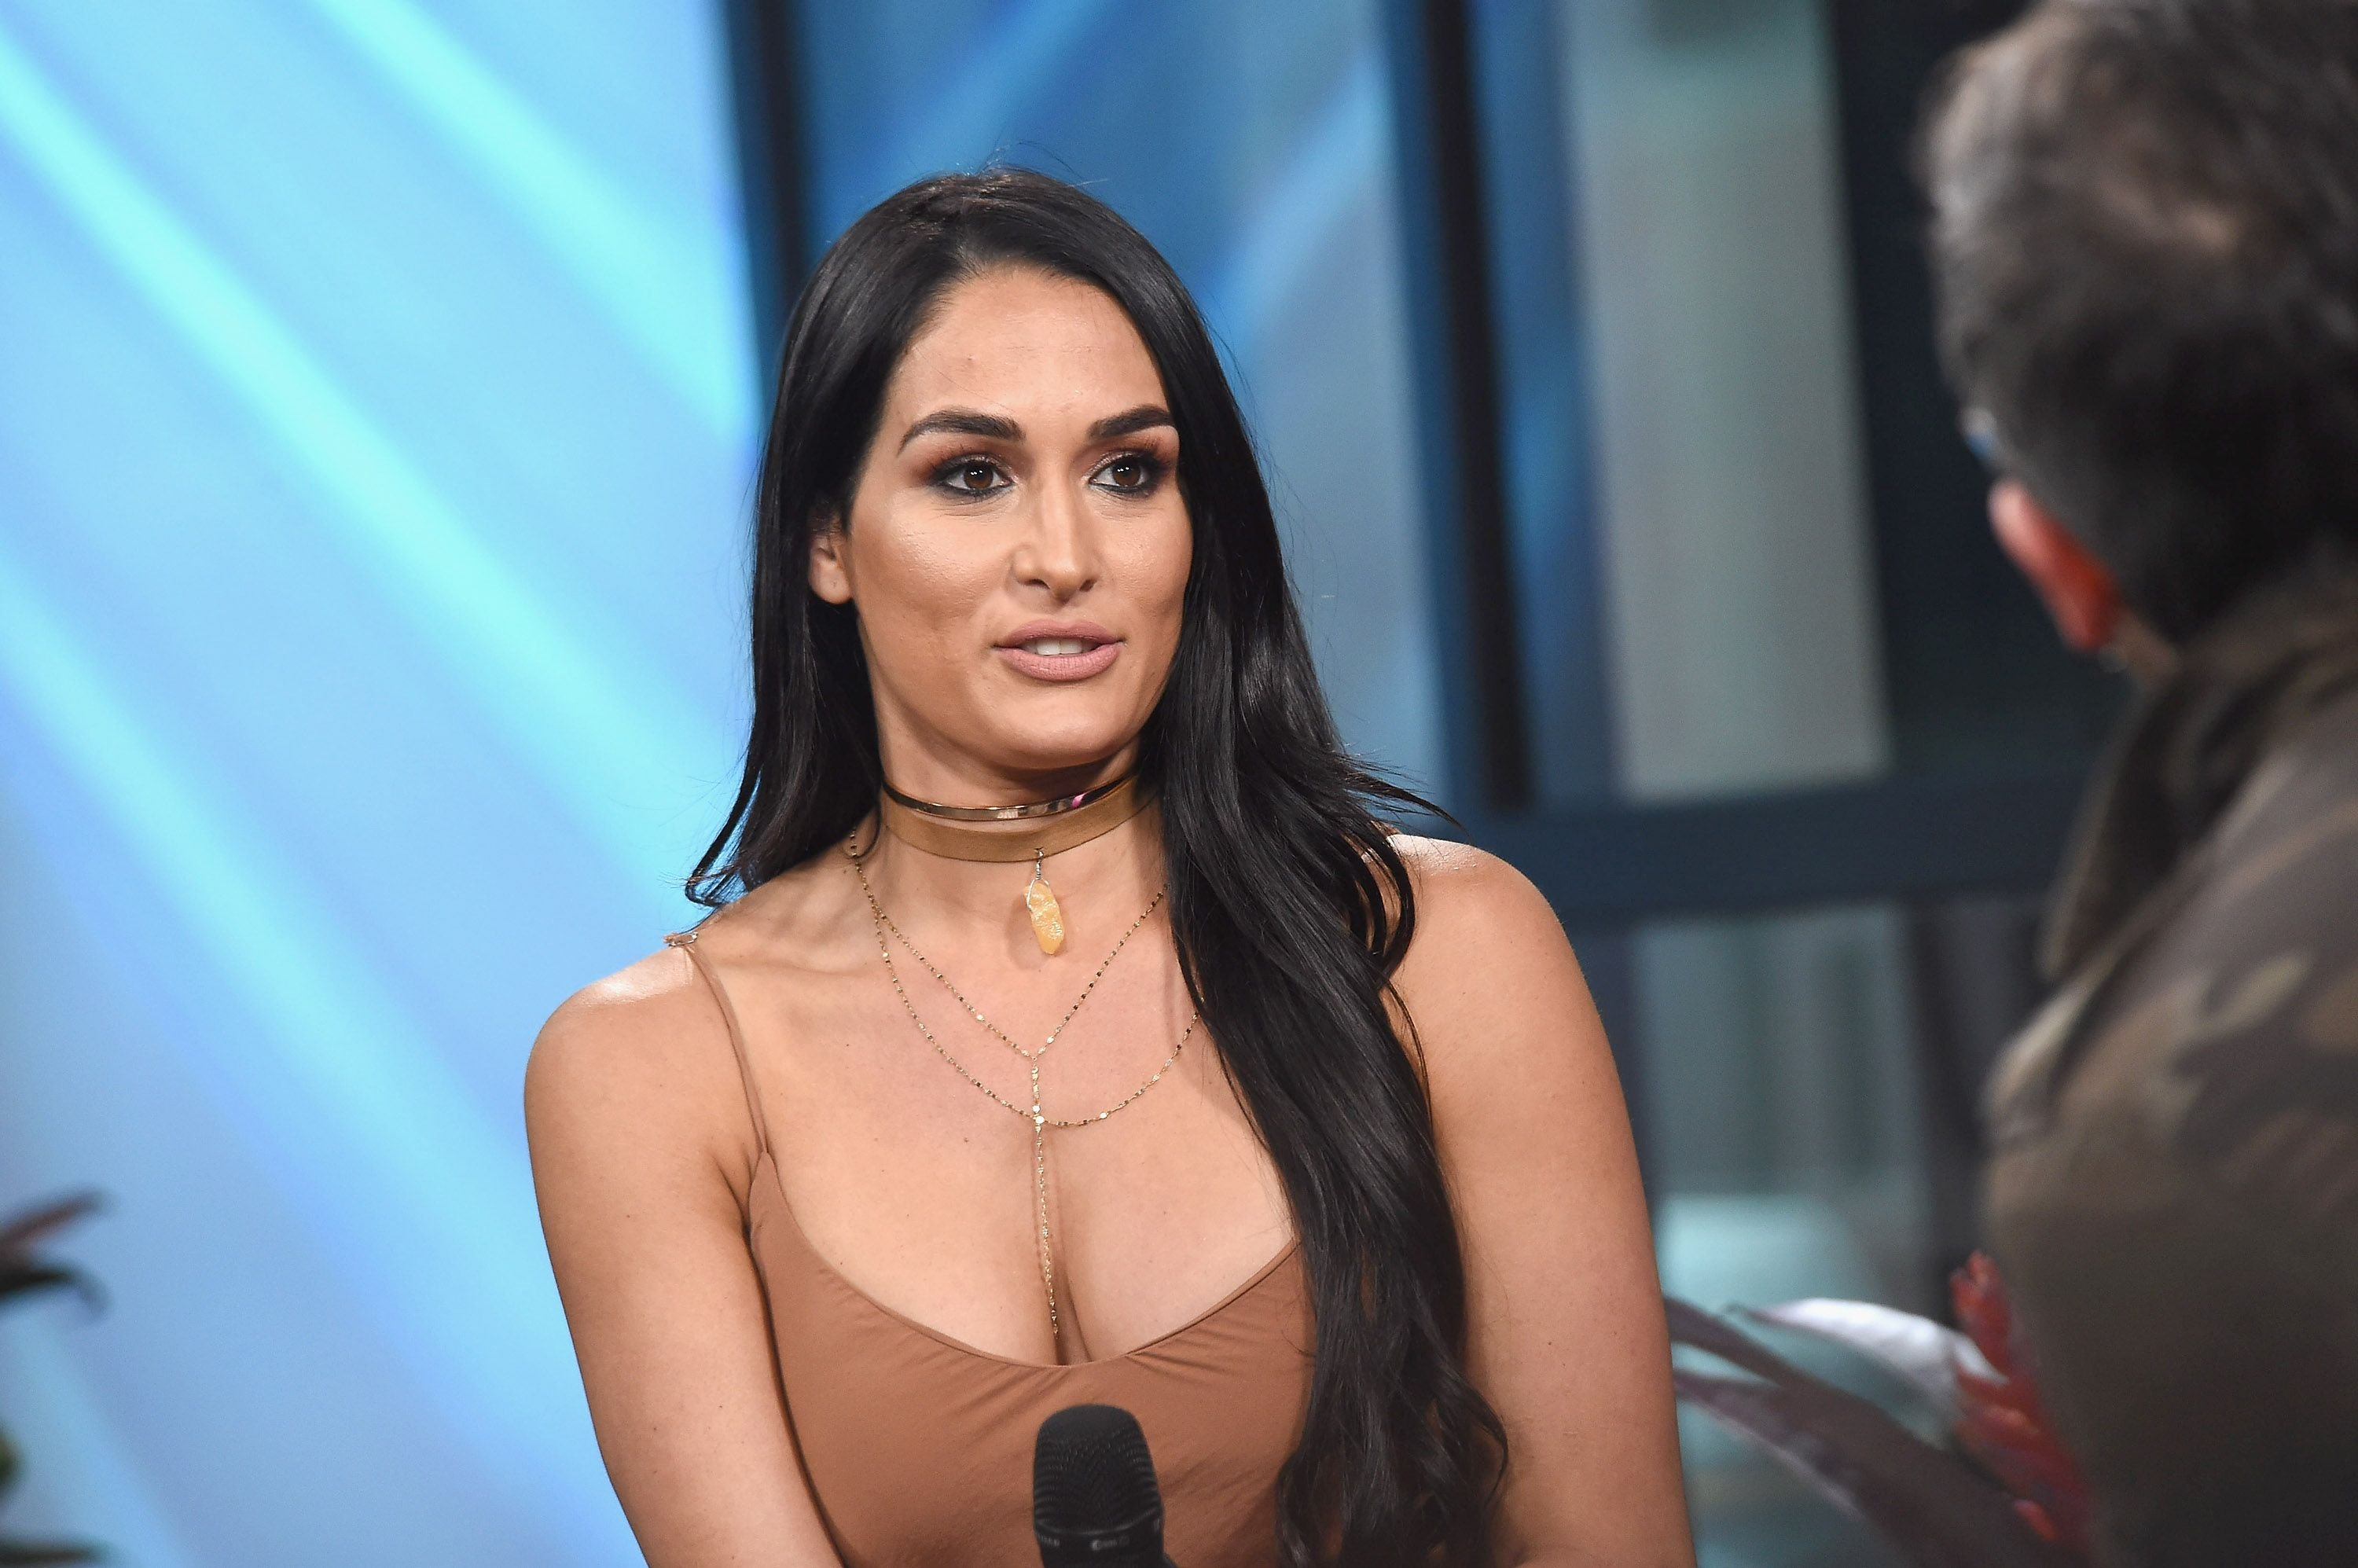 """Nikki Bella atthe Build Series to discuss the reality series """"Total Divas""""at Build Studio on April 5, 2017, in New York City 